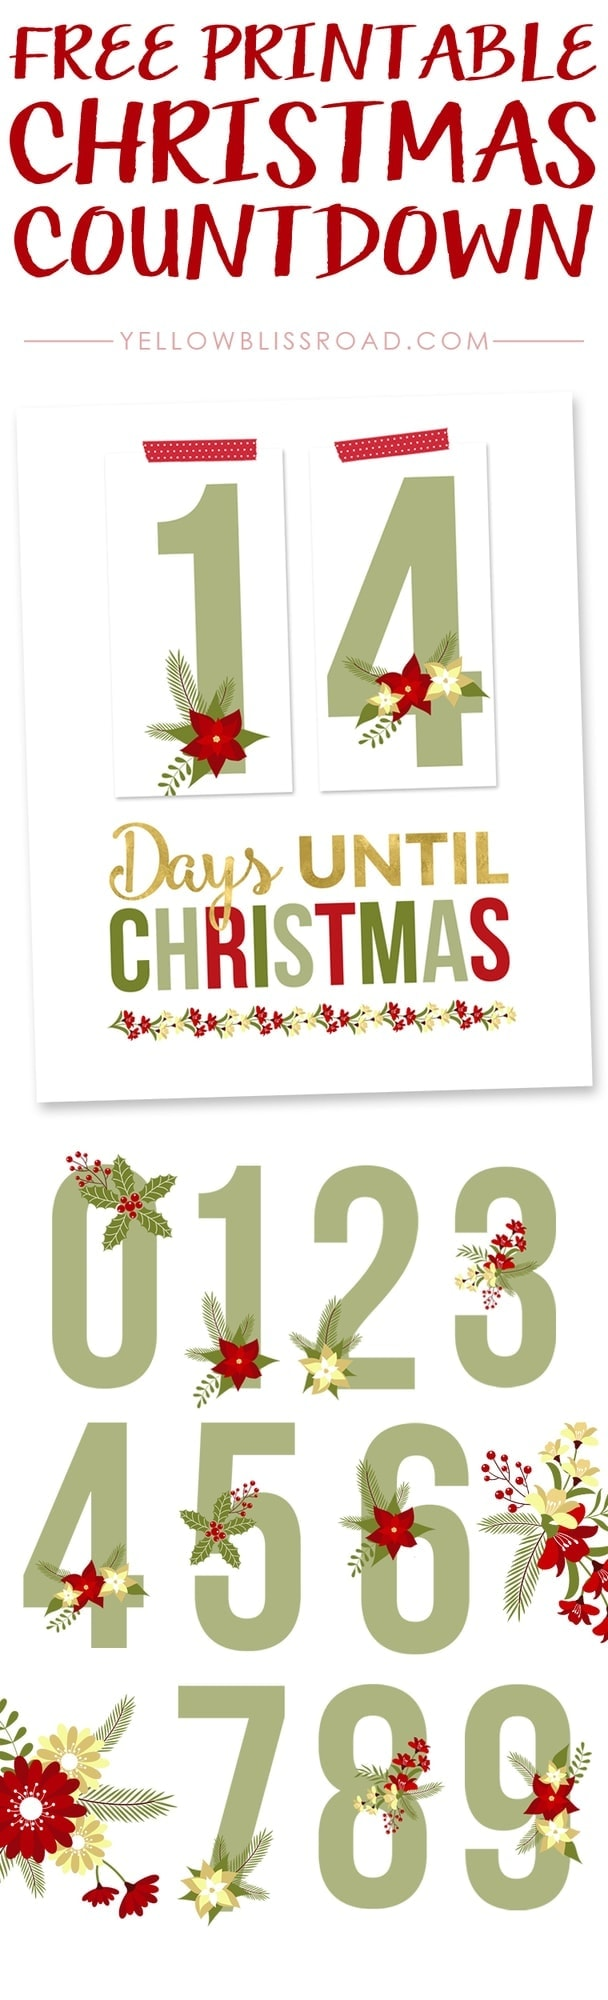 Free Printable Christmas Countdown collage